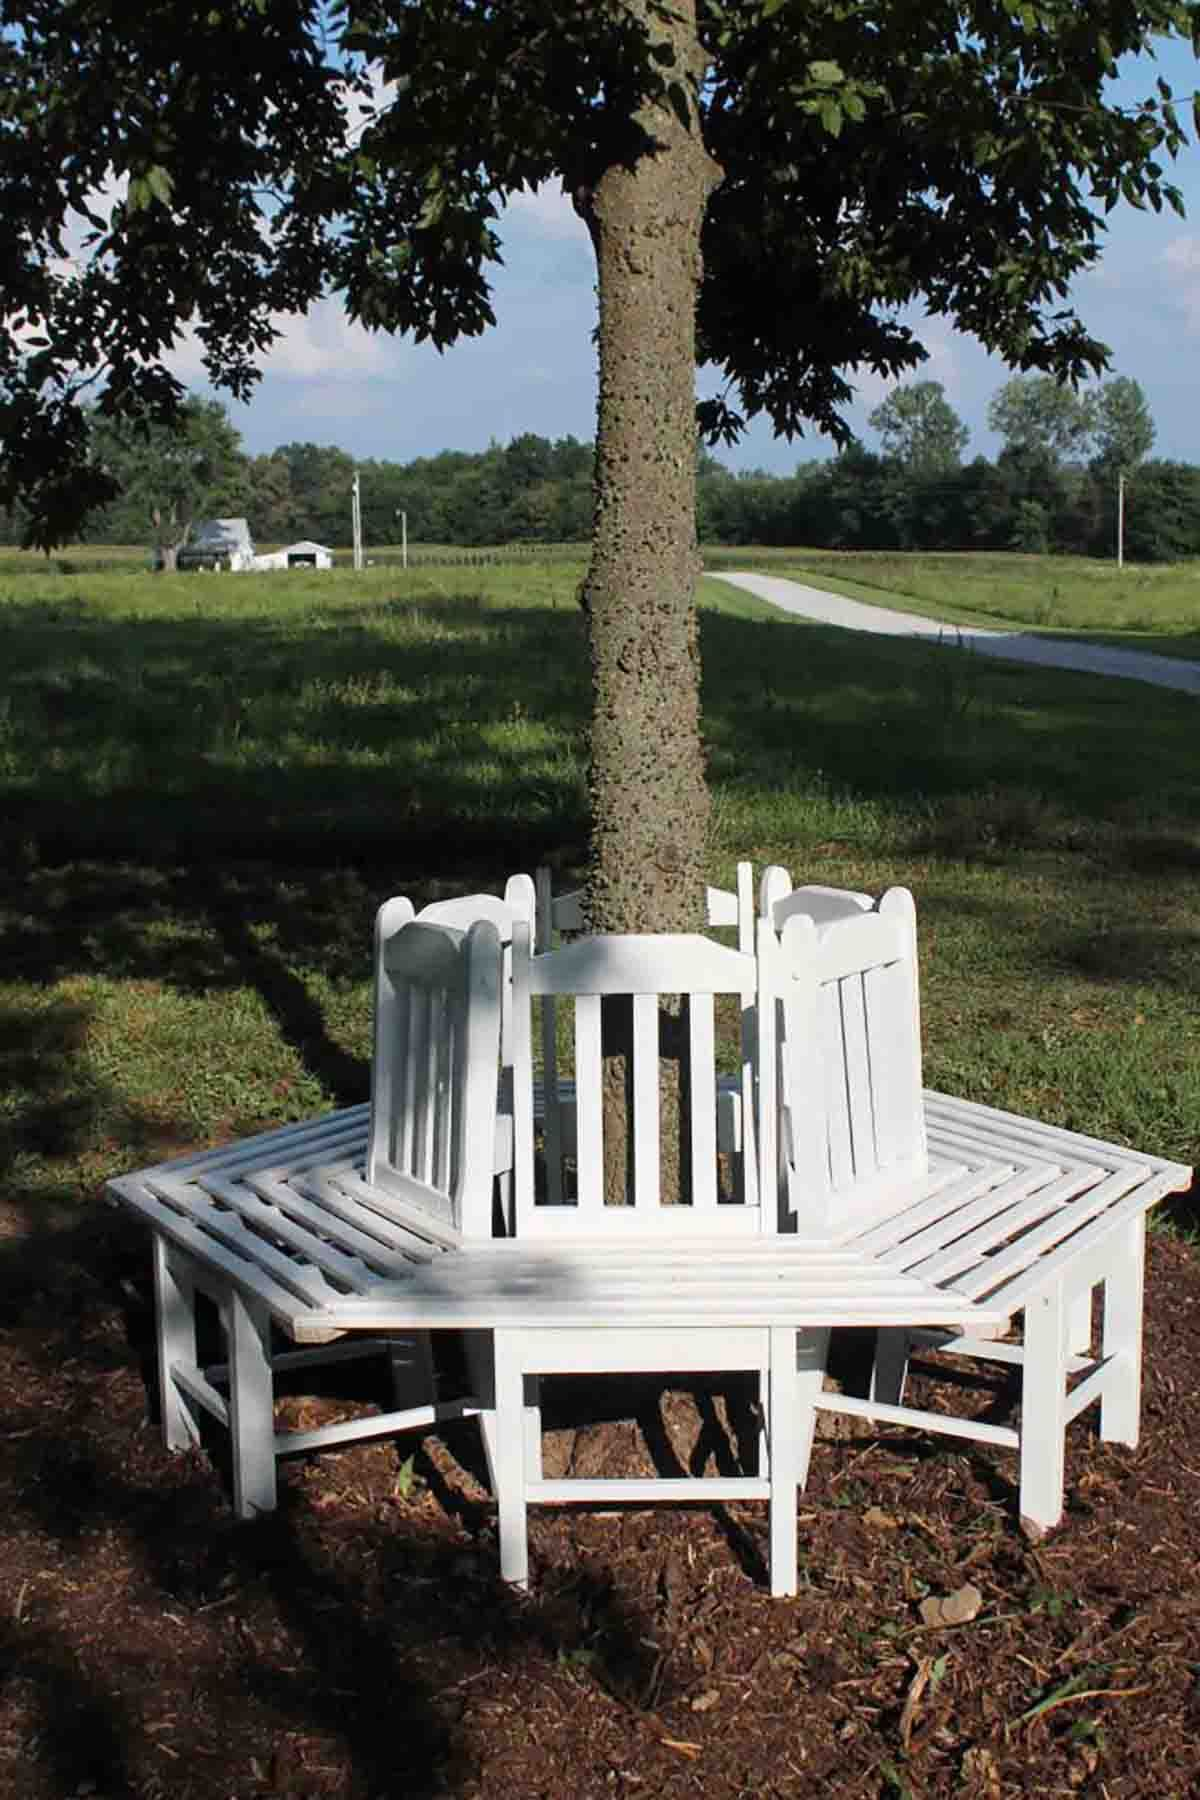 22 Diy Garden Bench Ideas – Free Plans For Outdoor Benches Inside Tree Of Life Iron Garden Benches (View 25 of 25)